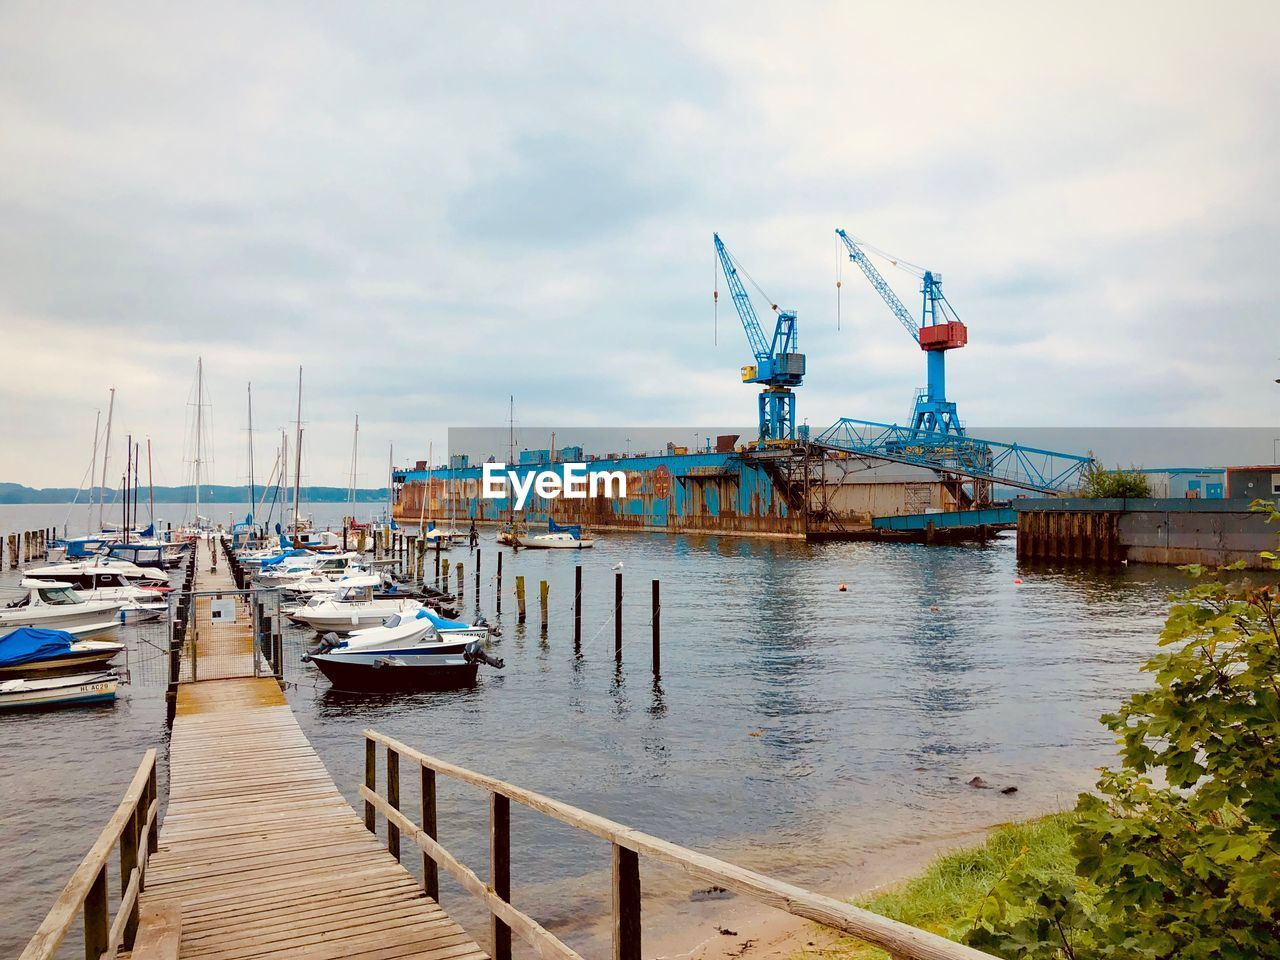 water, transportation, cloud - sky, nautical vessel, sky, mode of transportation, pier, moored, harbor, no people, architecture, nature, day, sea, built structure, wood - material, building exterior, outdoors, machinery, port, sailboat, wooden post, fishing boat, marina